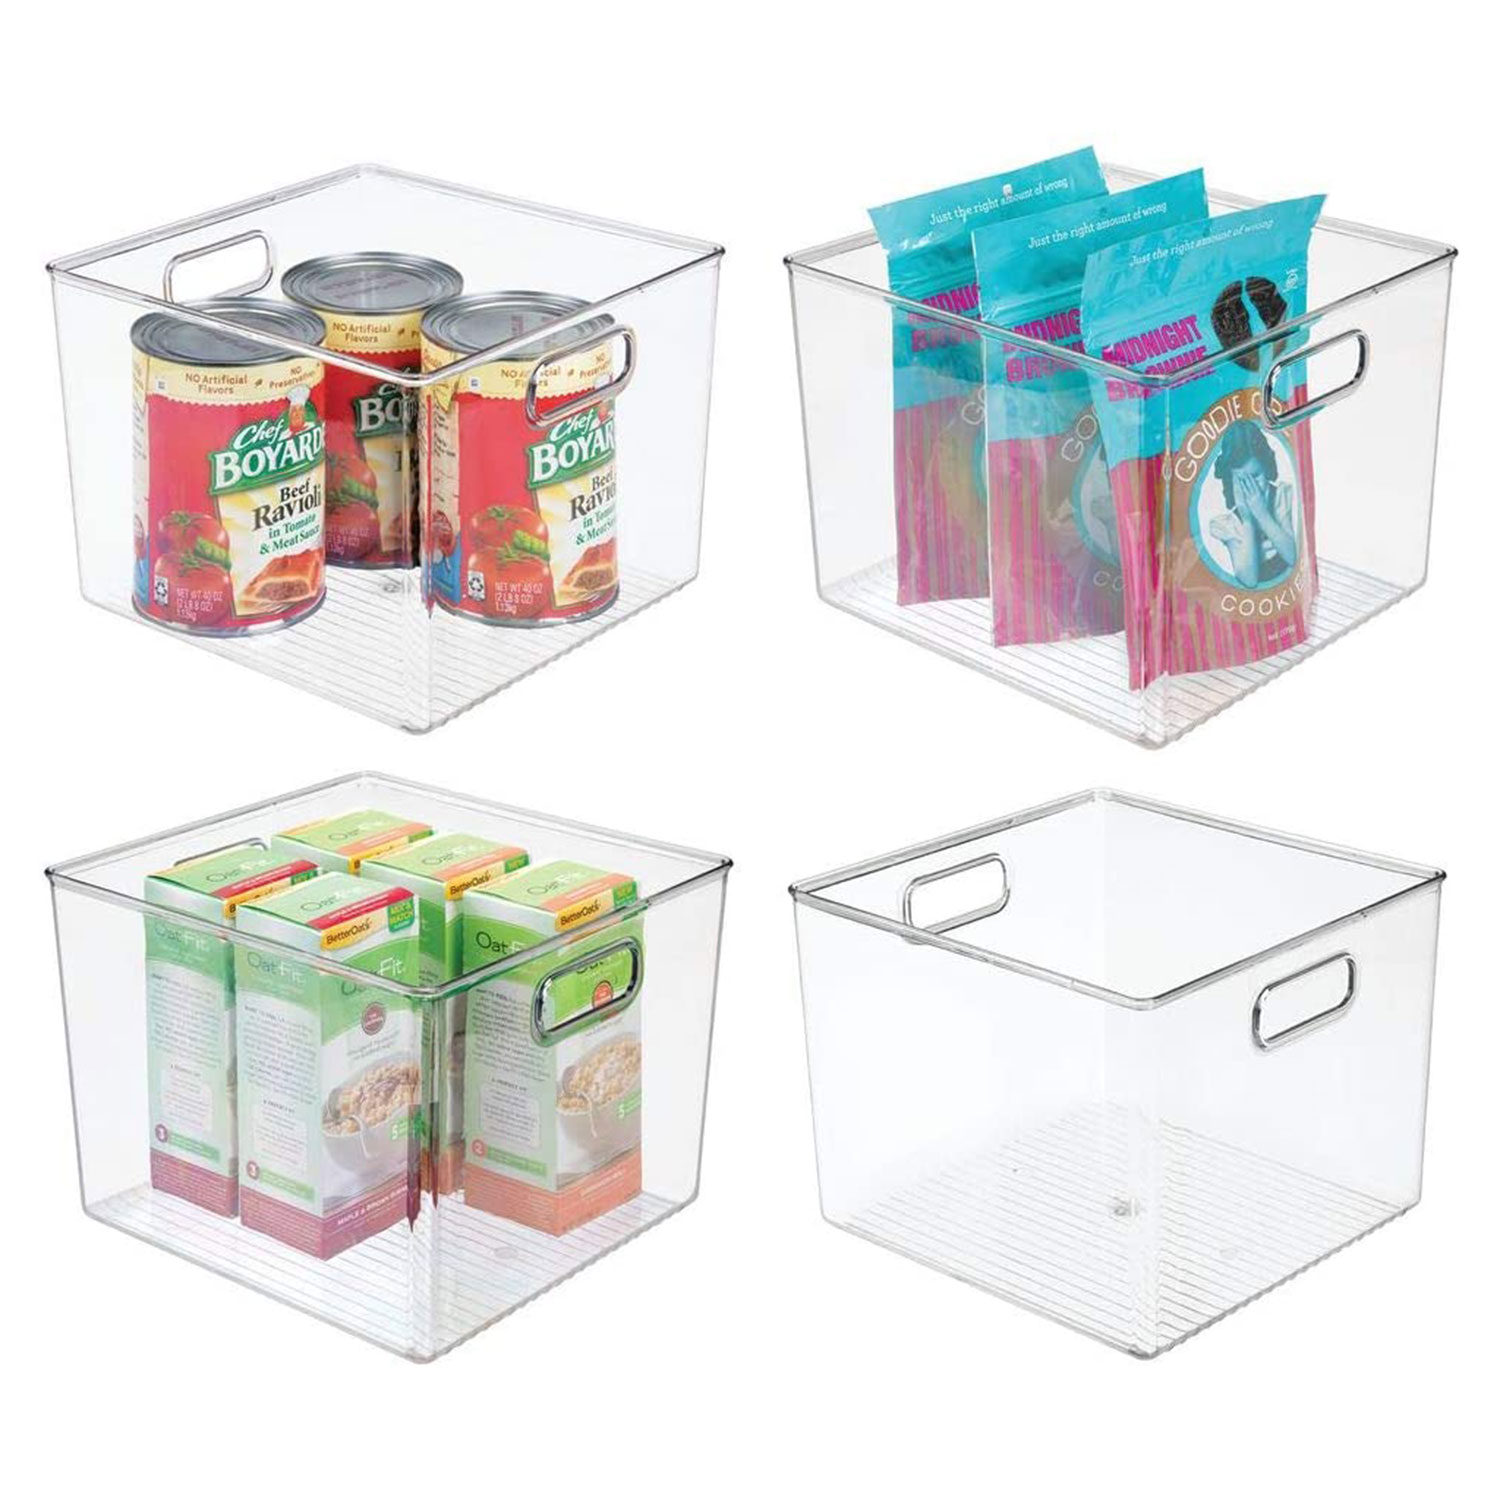 Storage Bin Basket with Open Front for Kitchen Cabinets, Pantry for Organizing